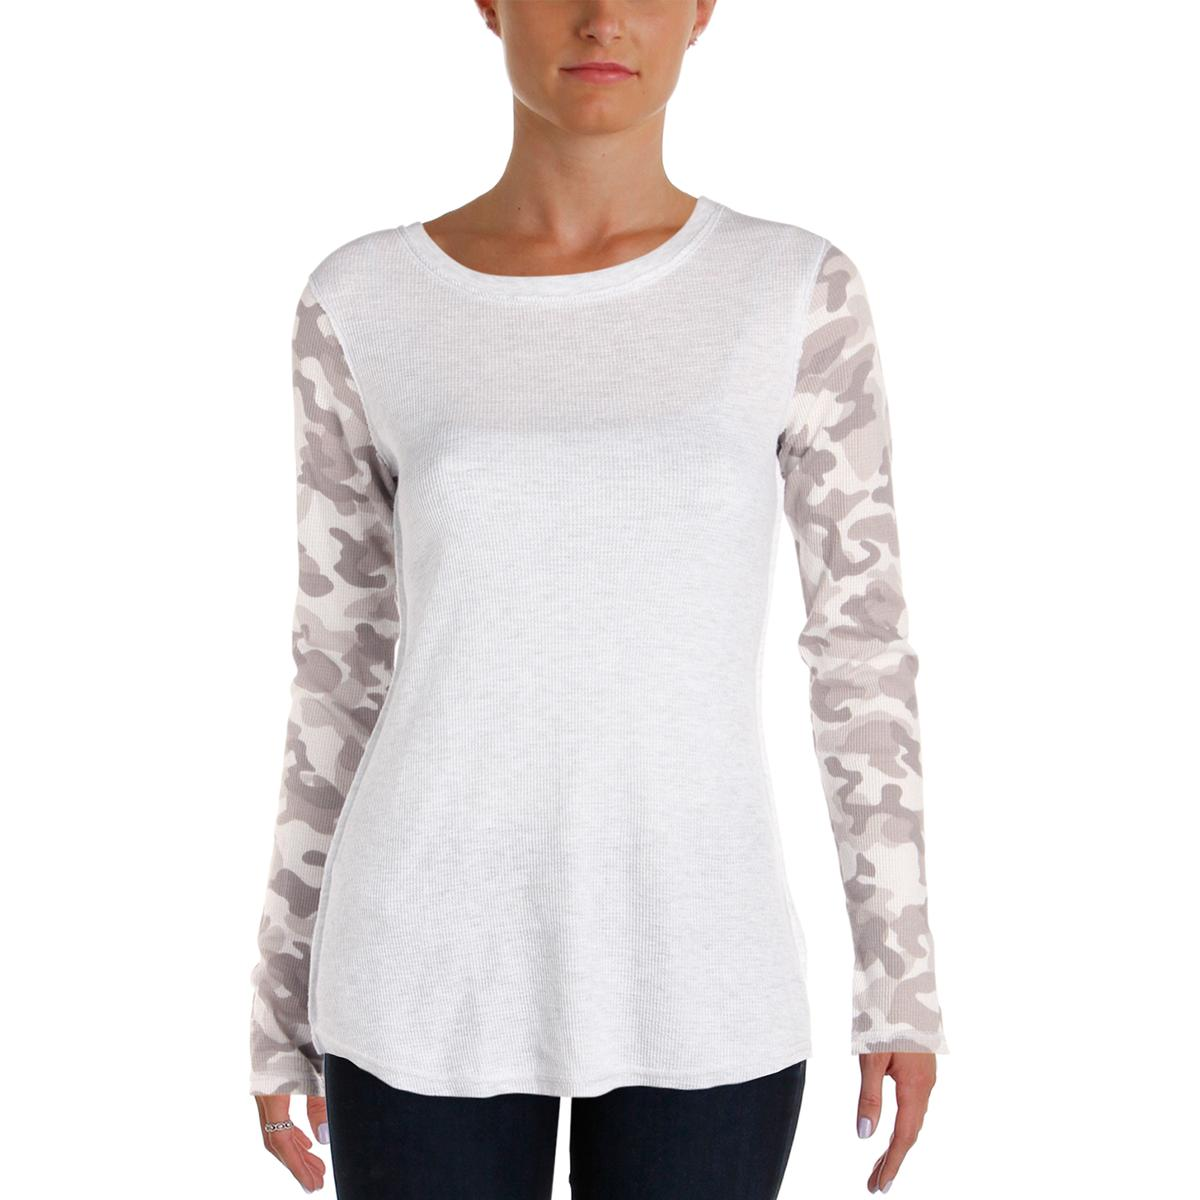 a50cbaca3645a3 Details about Kensie Womens Waffle Knit Camoflage Long Sleeves Thermal Top  Shirt BHFO 4127